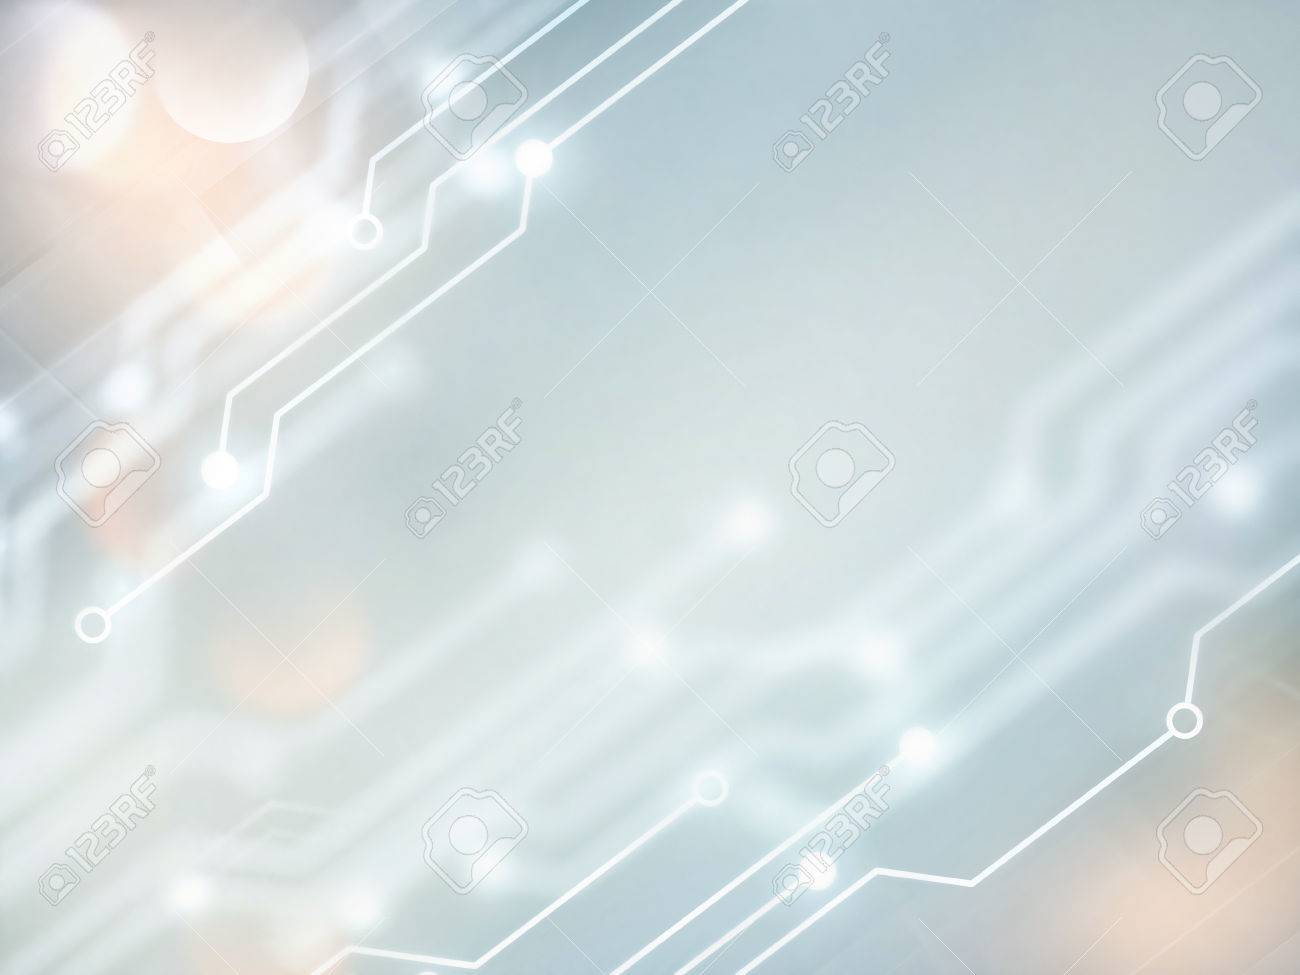 Abstract high tech background in white and gray tones - 54795590